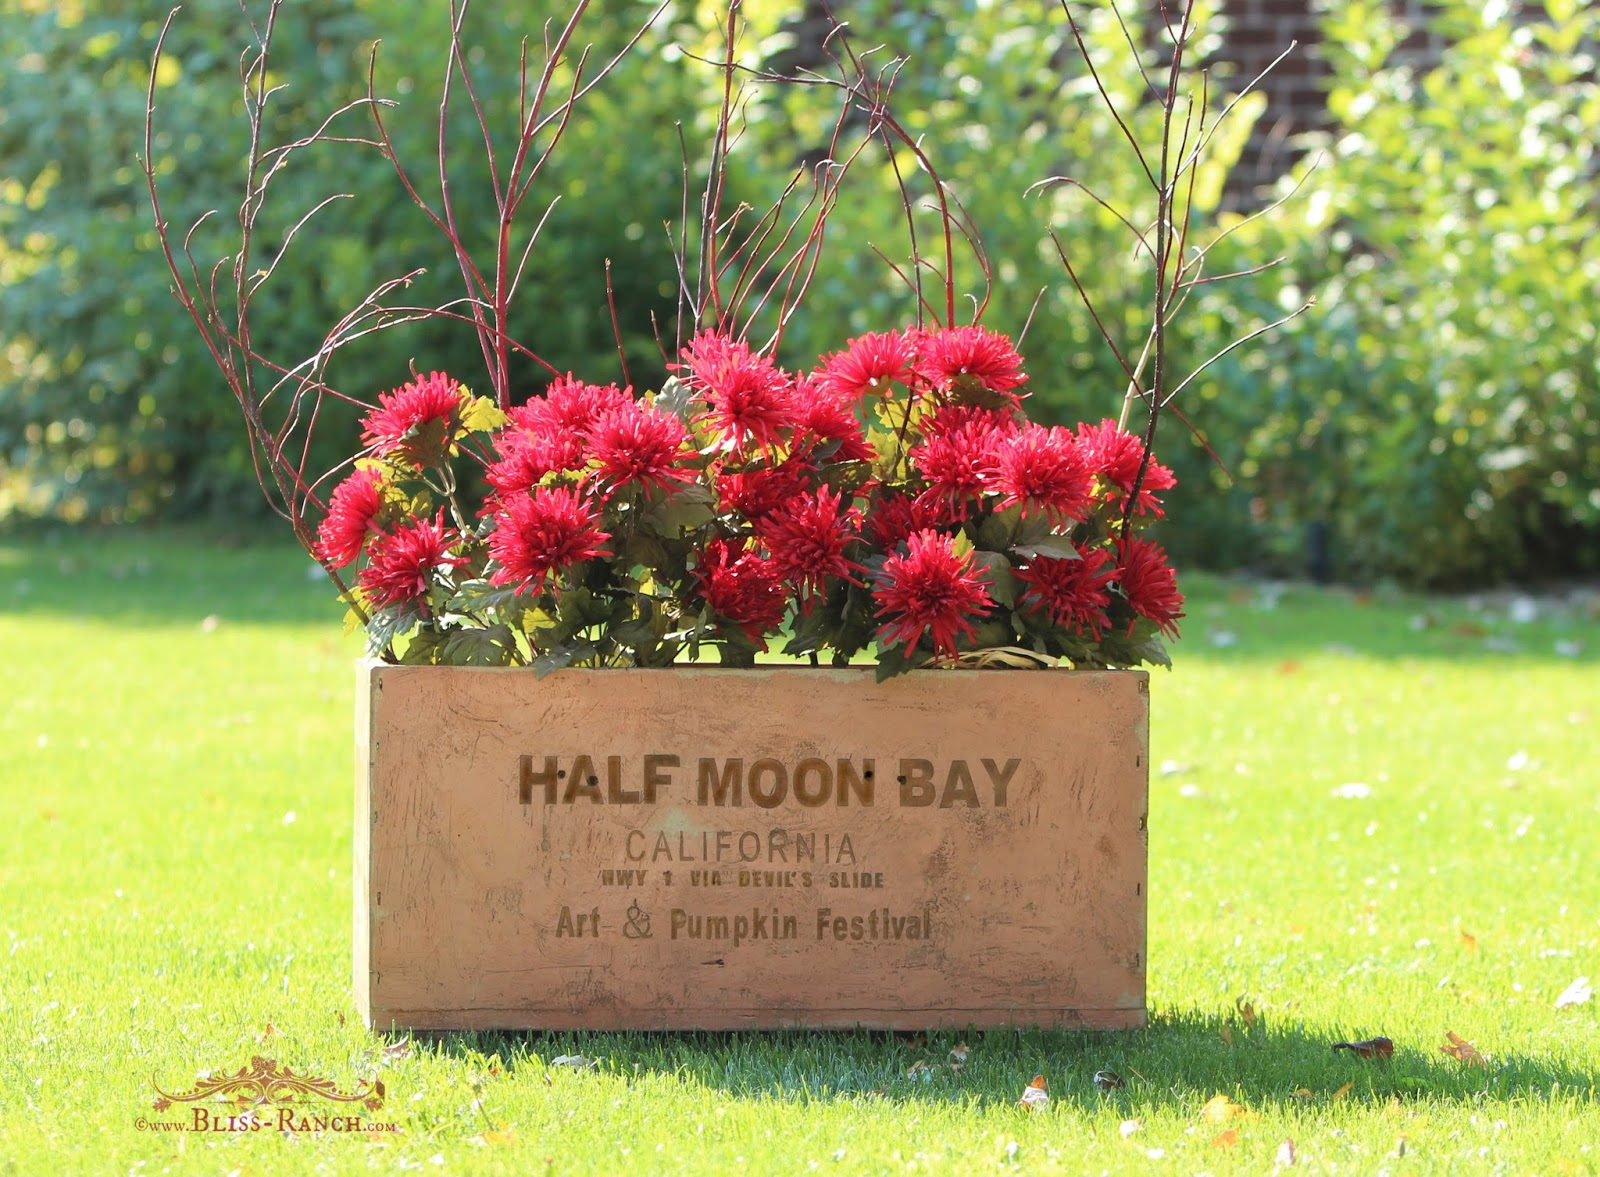 Half Moon Bay California Box Maison Blanche Paint Bliss-Ranch.com